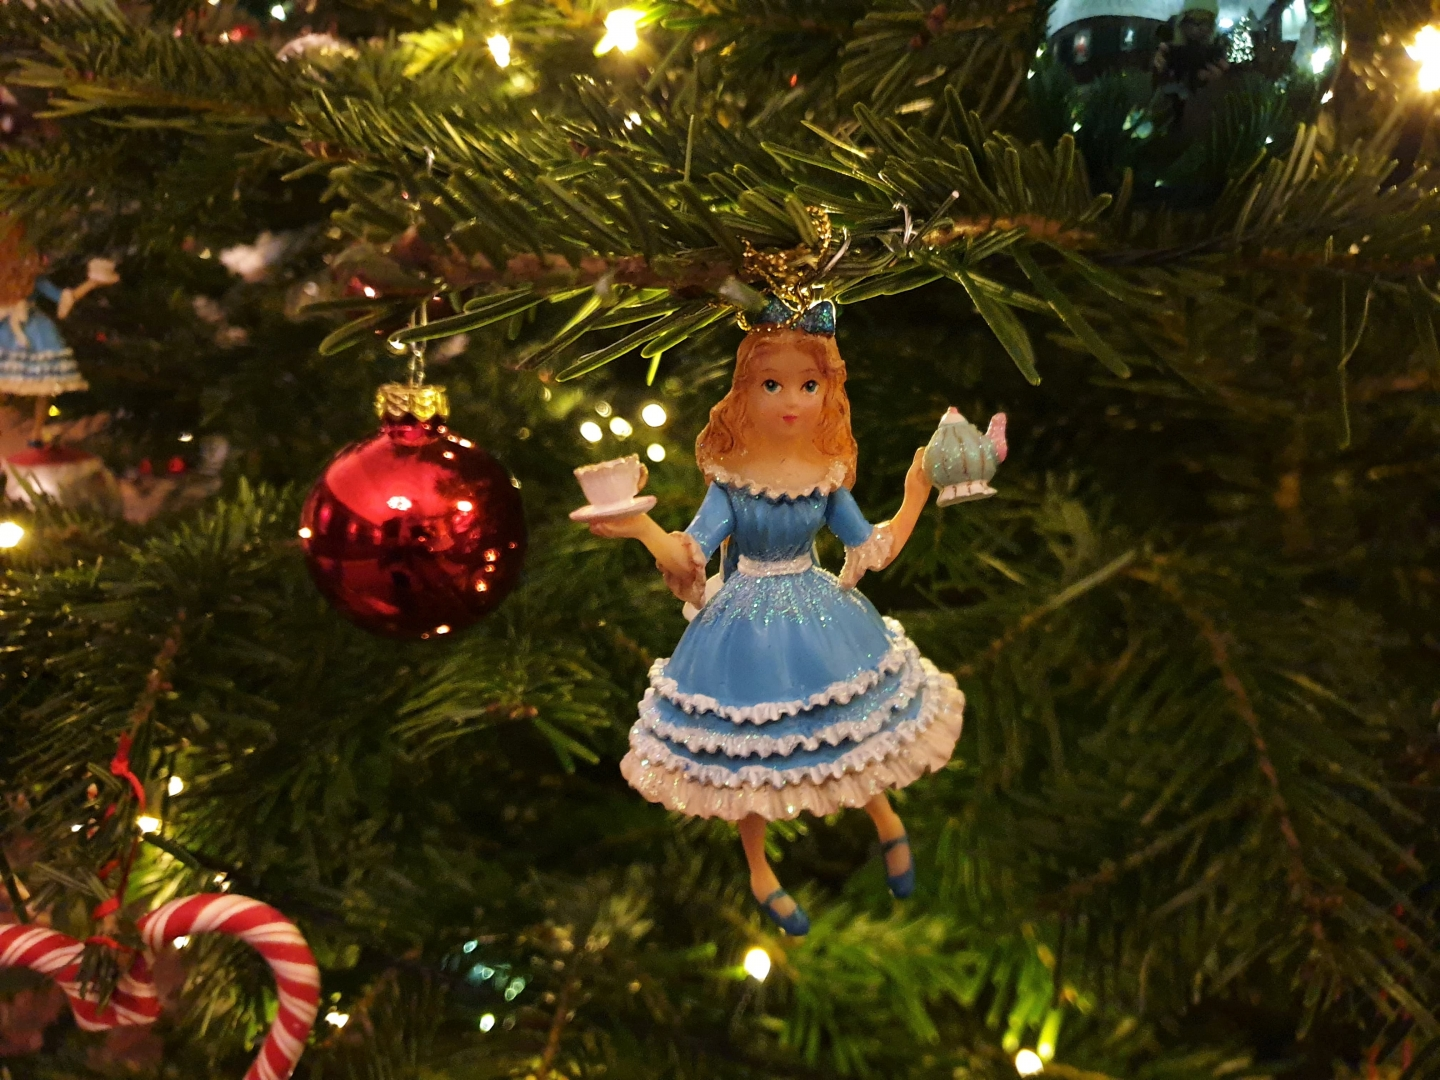 Alice in Wonderland tree decoration at Hever Castle